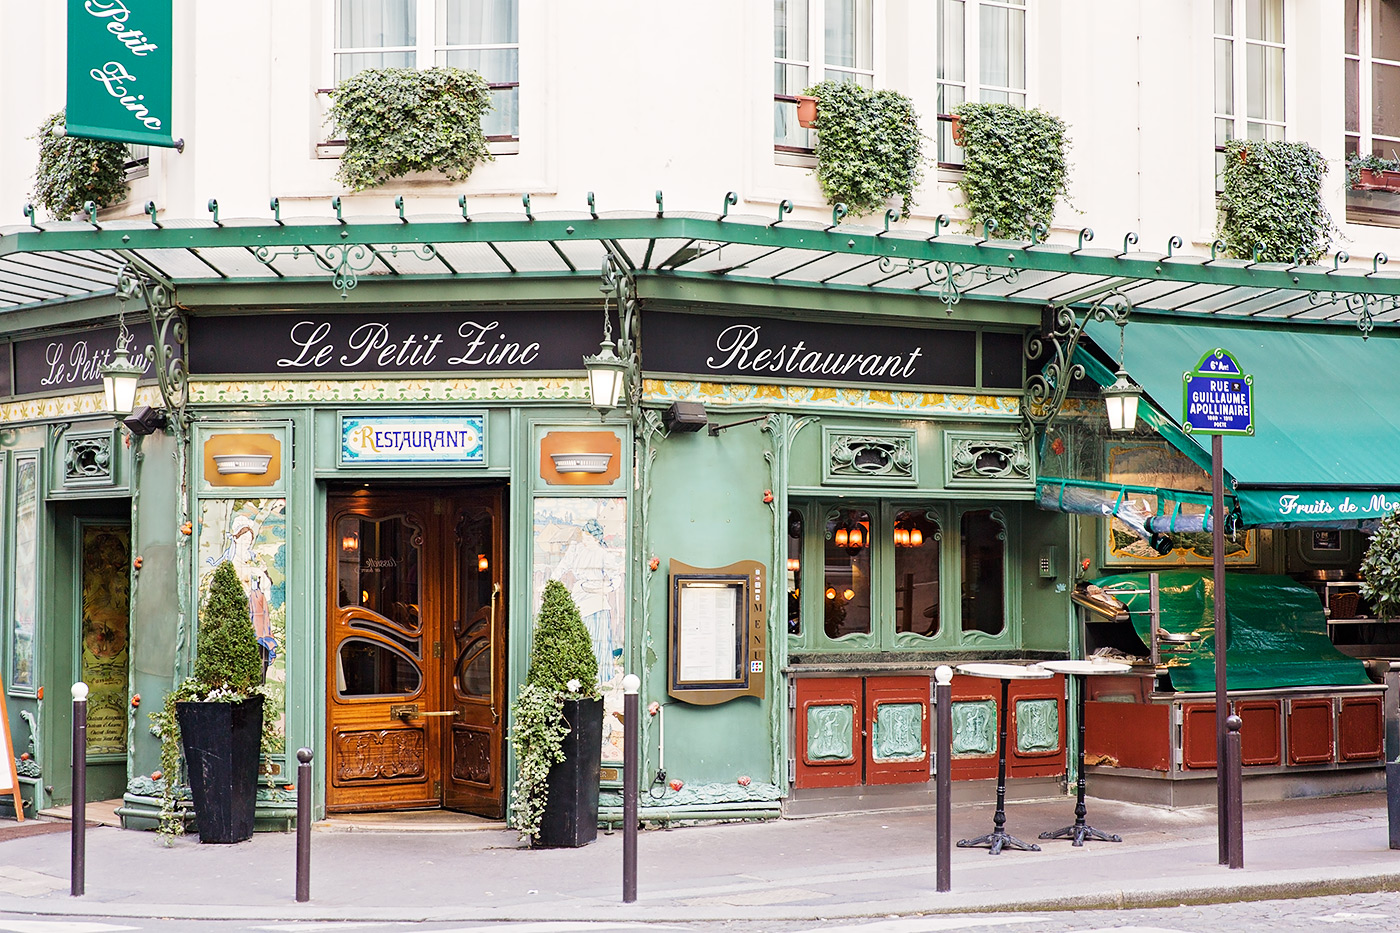 Le petit zinc restaurant in paris - Le petit salon paris ...